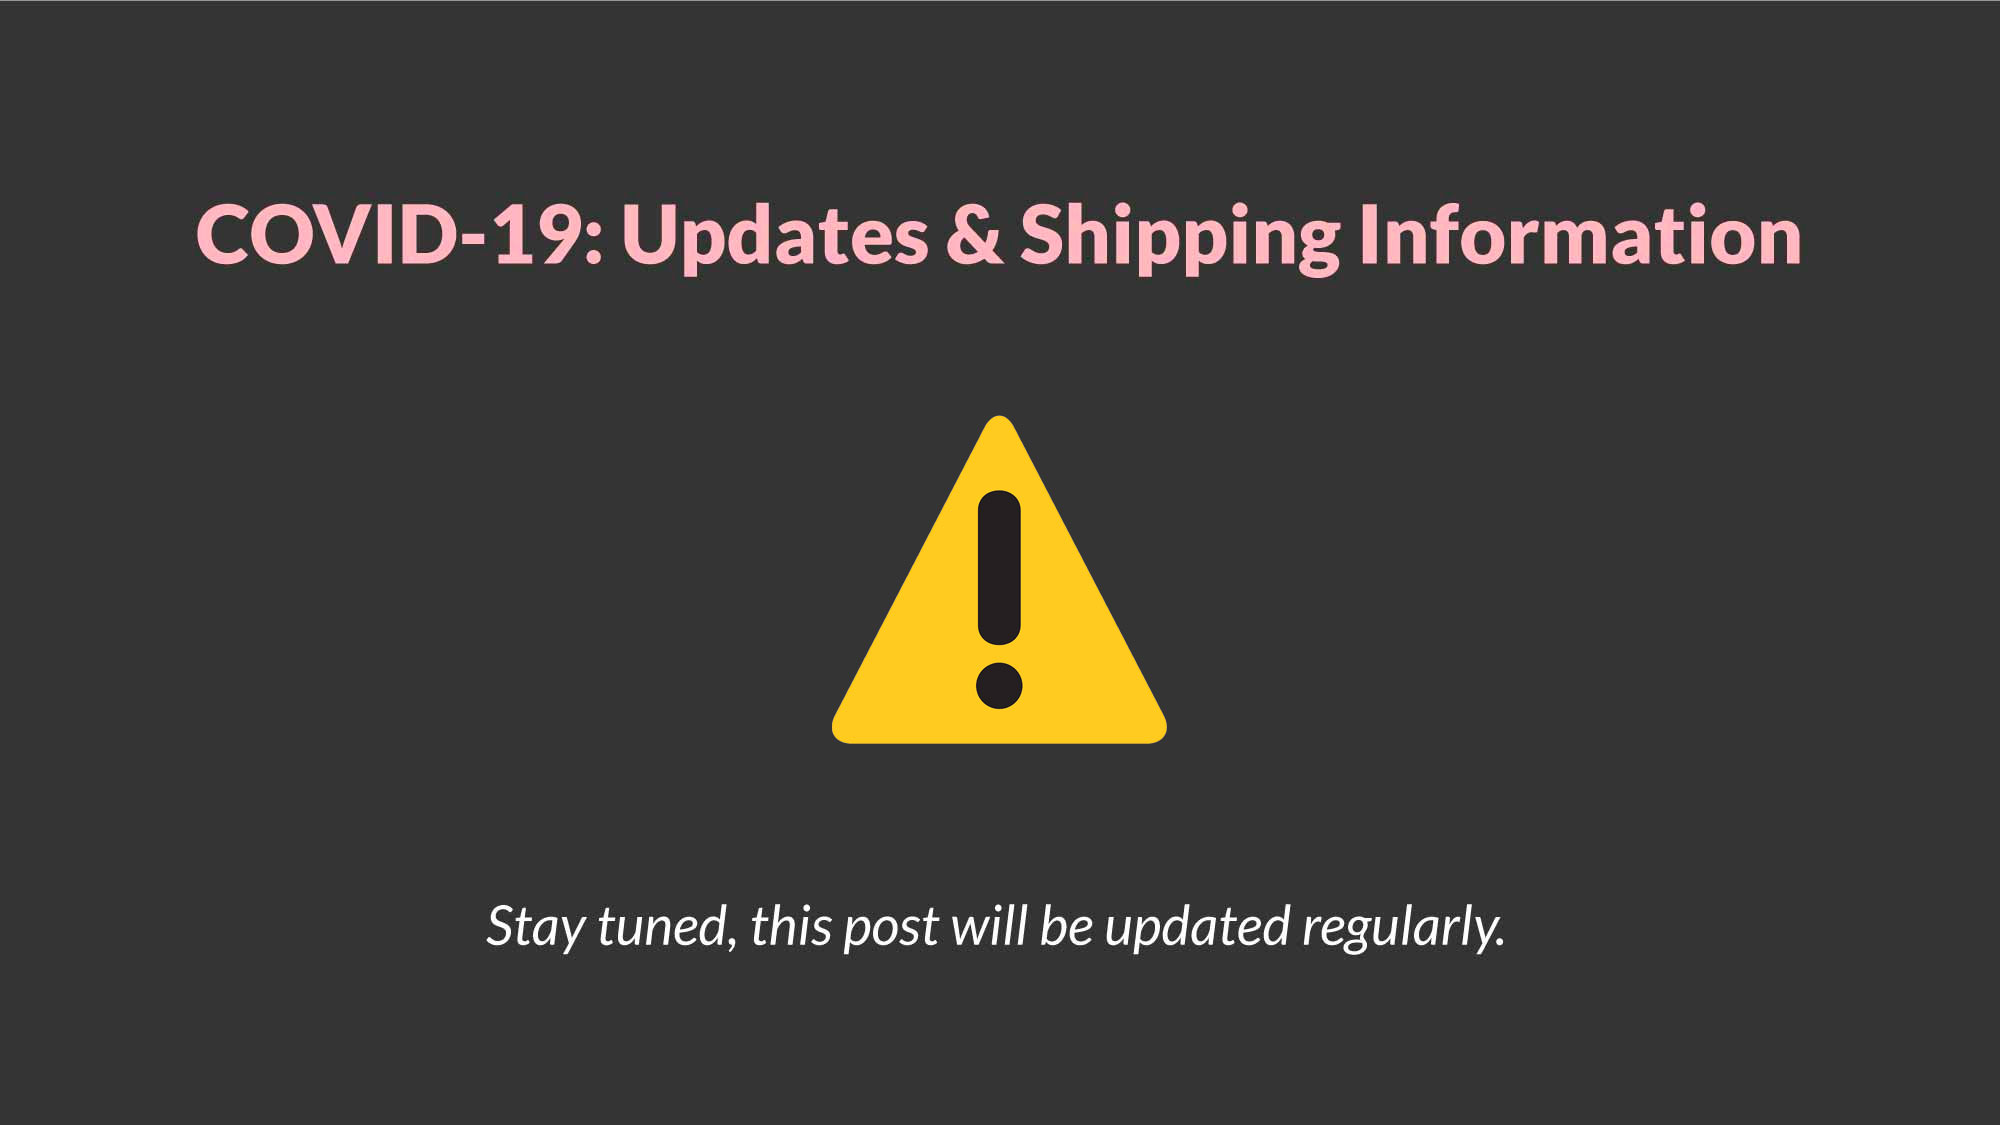 COVID-19: Updates & Shipping Information